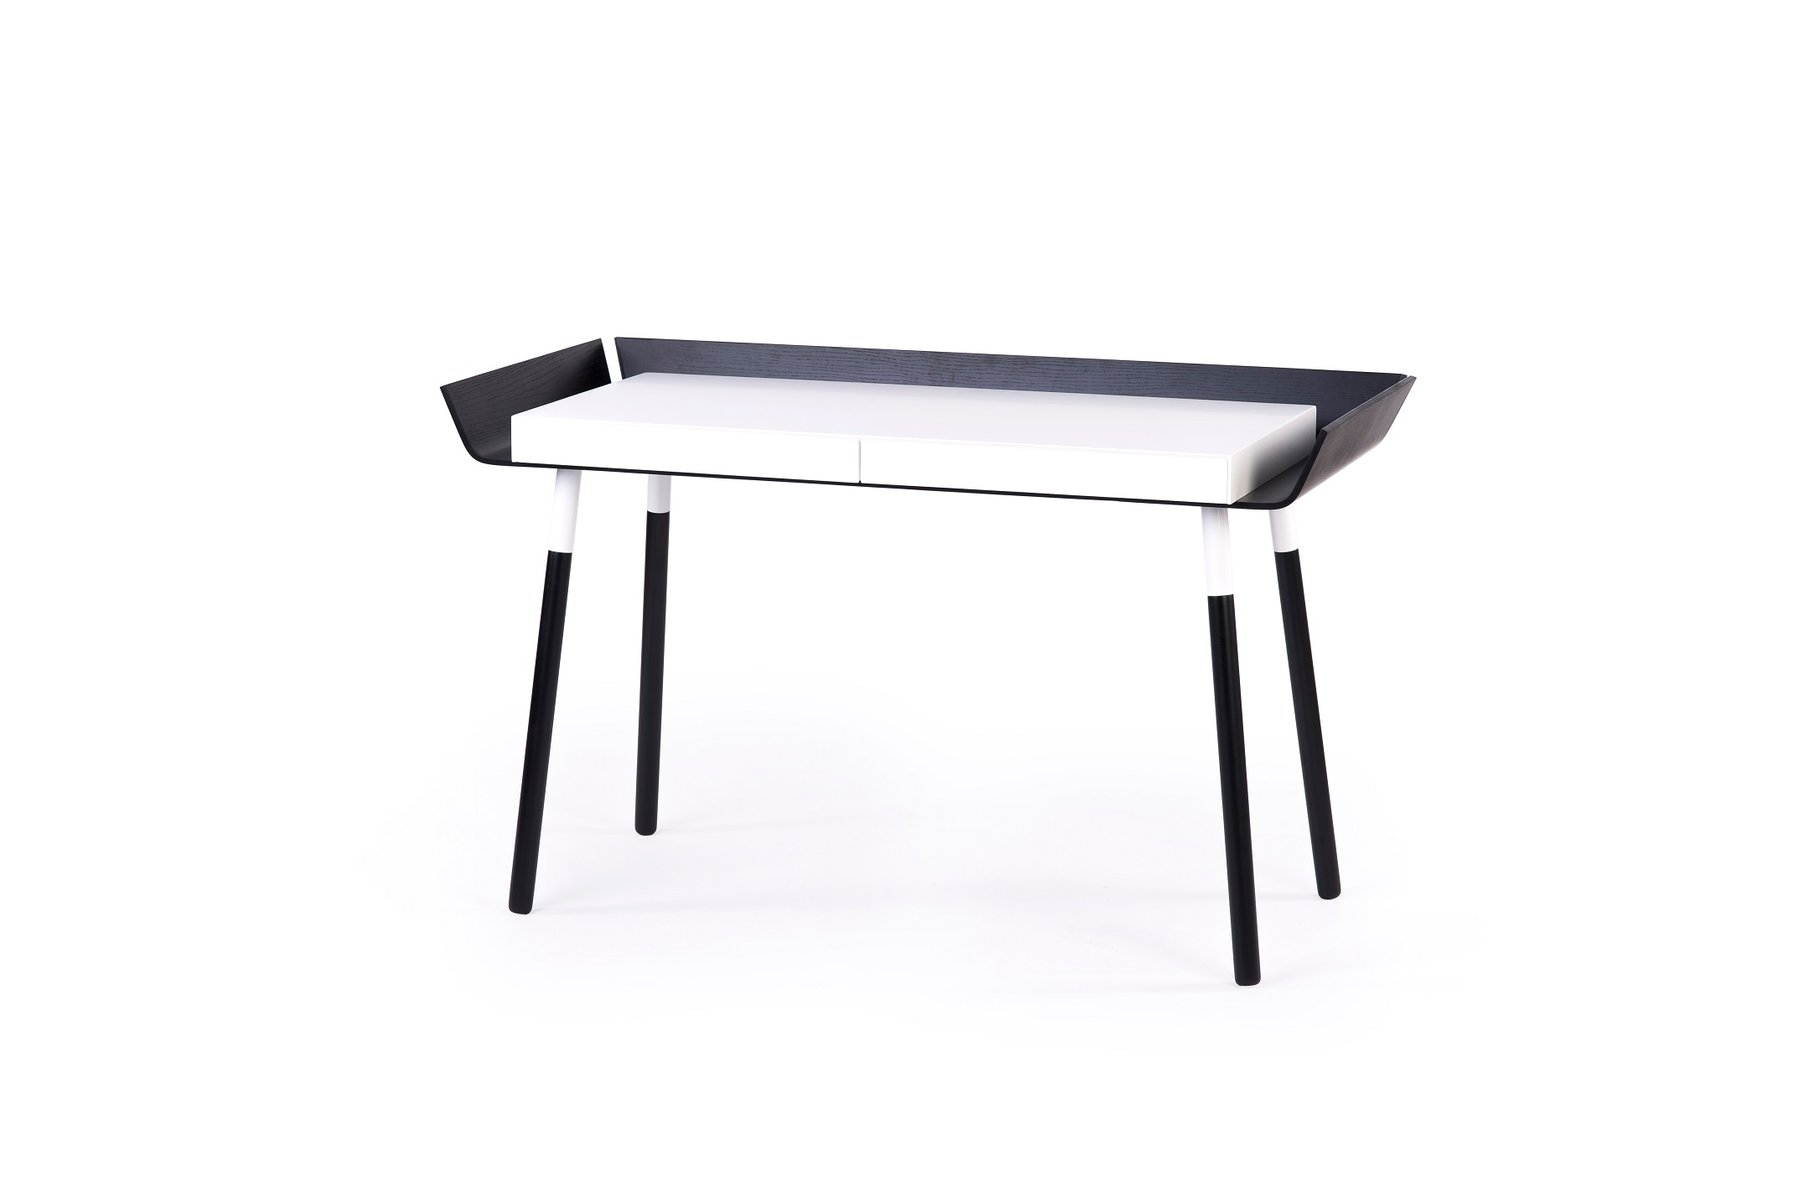 Large My Writing Desk In Black & White By Etcetc